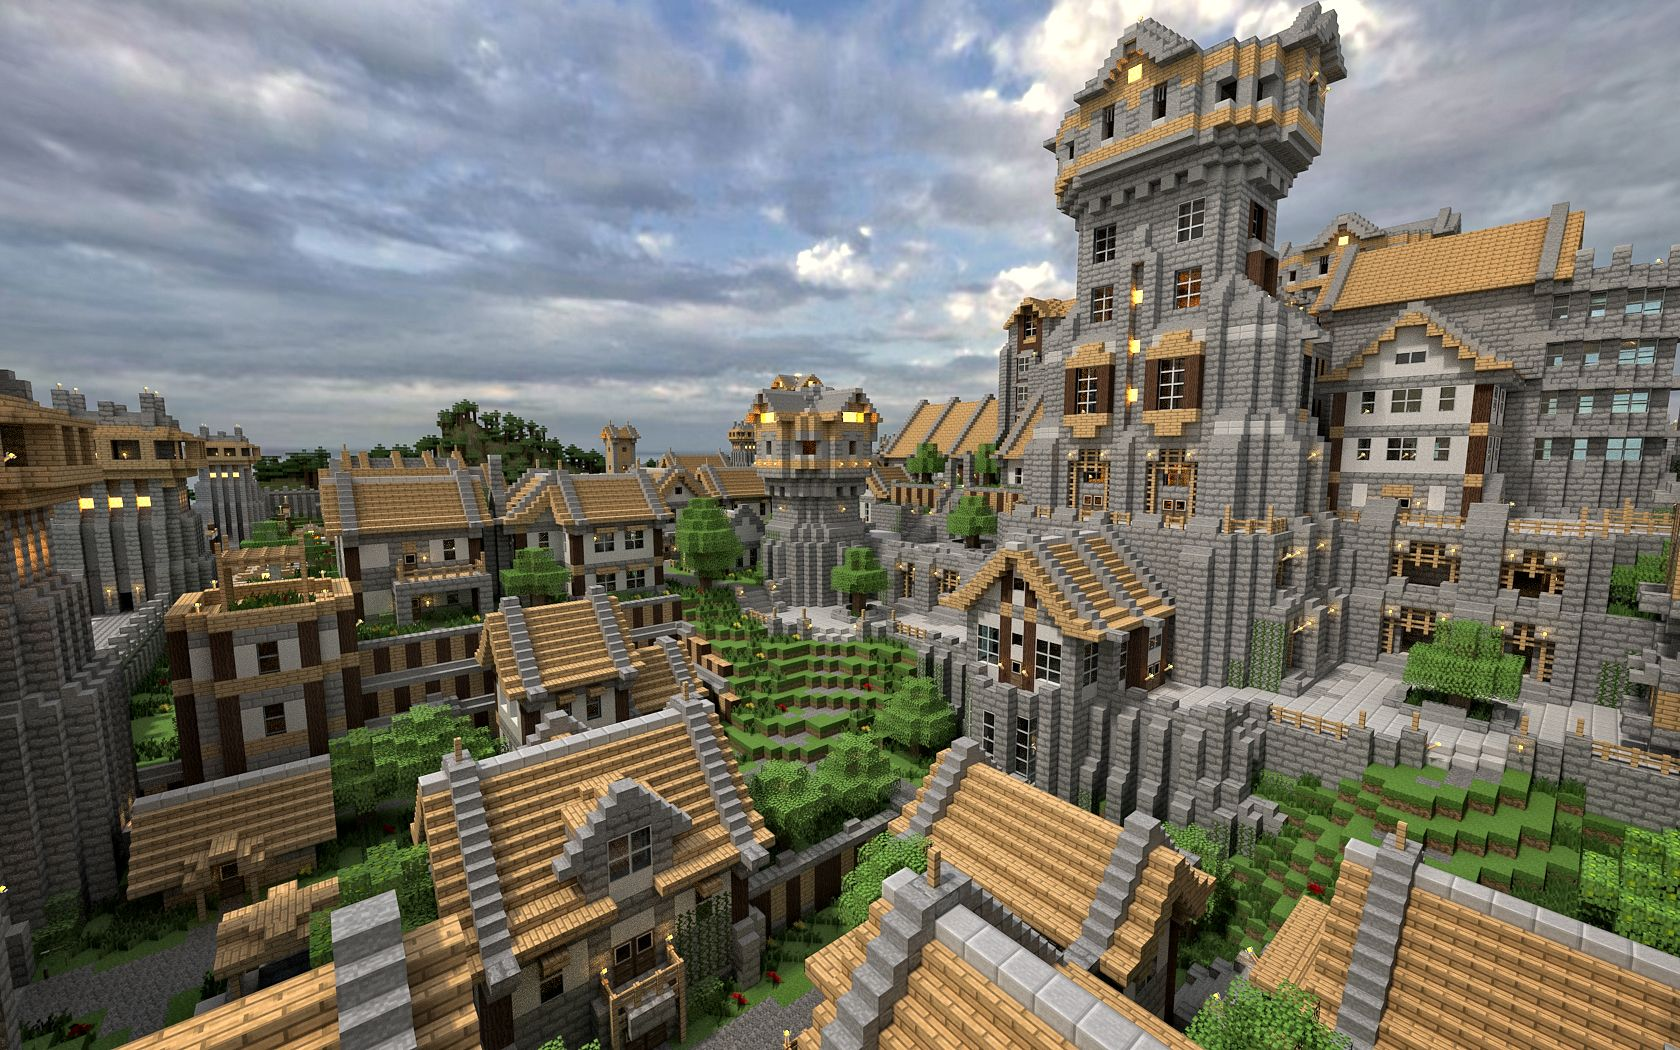 Minecraft Village I Really Want To Build Something Like This